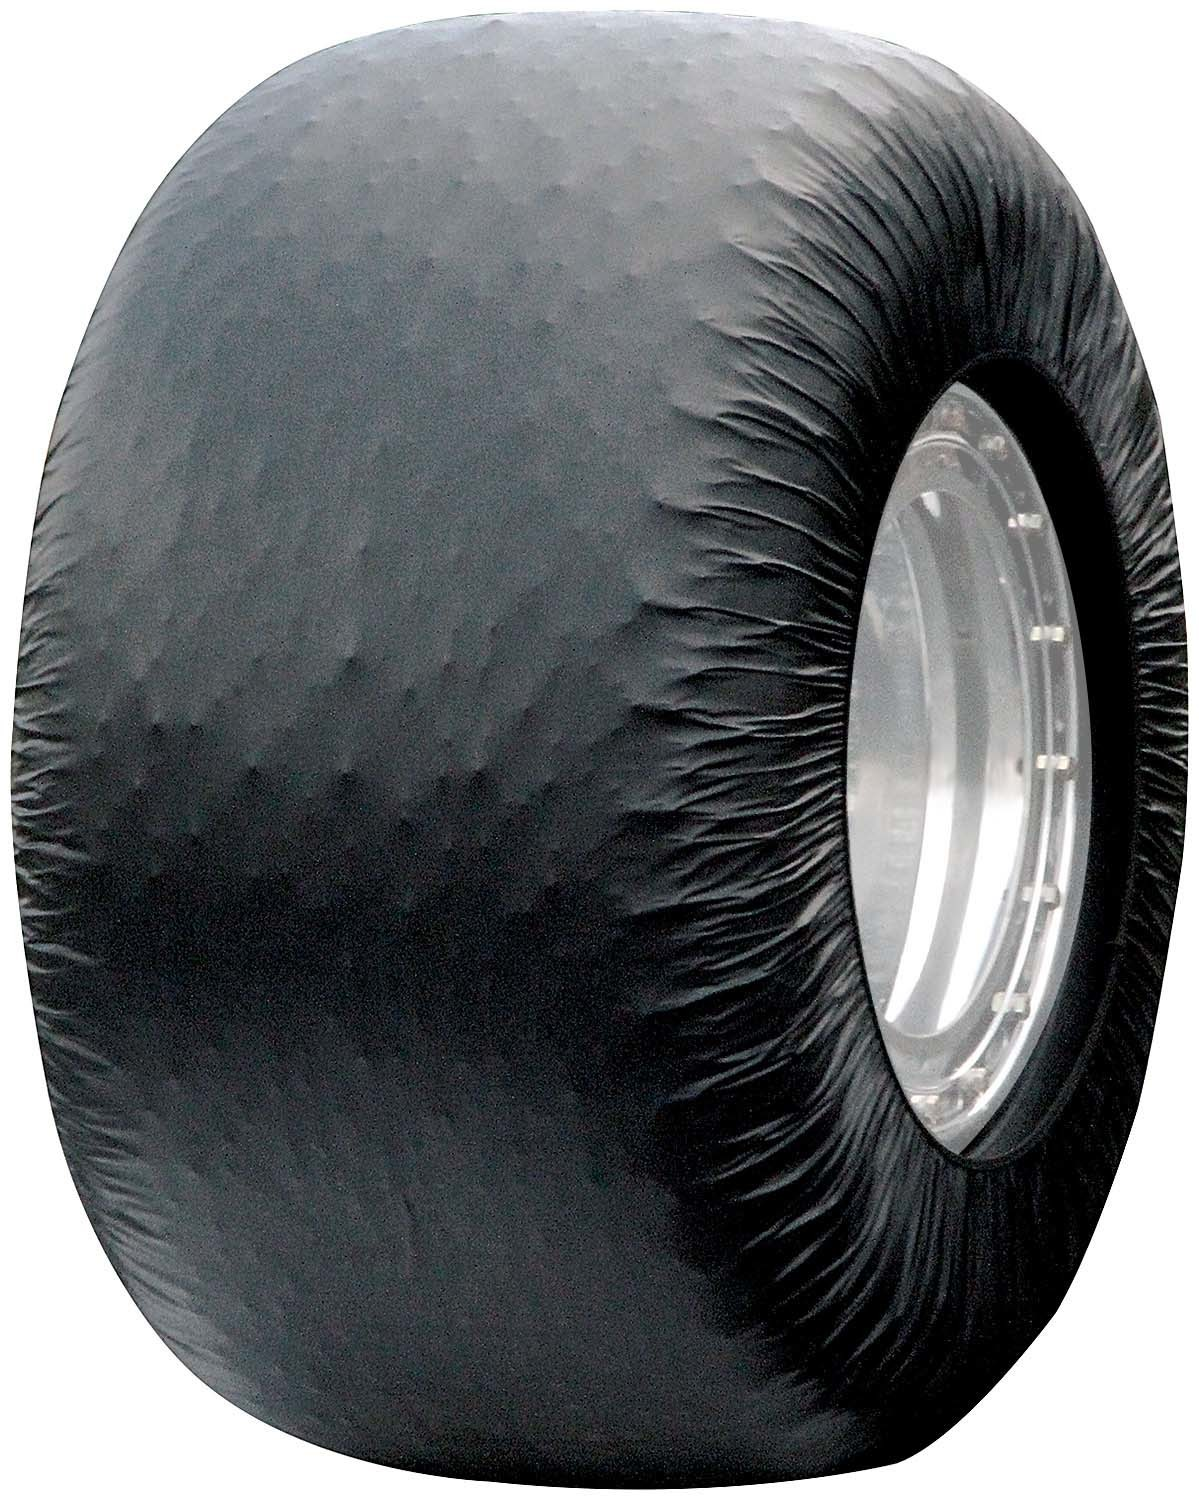 Allstar Performance Easy Wrap Tire Covers 4pk LM92